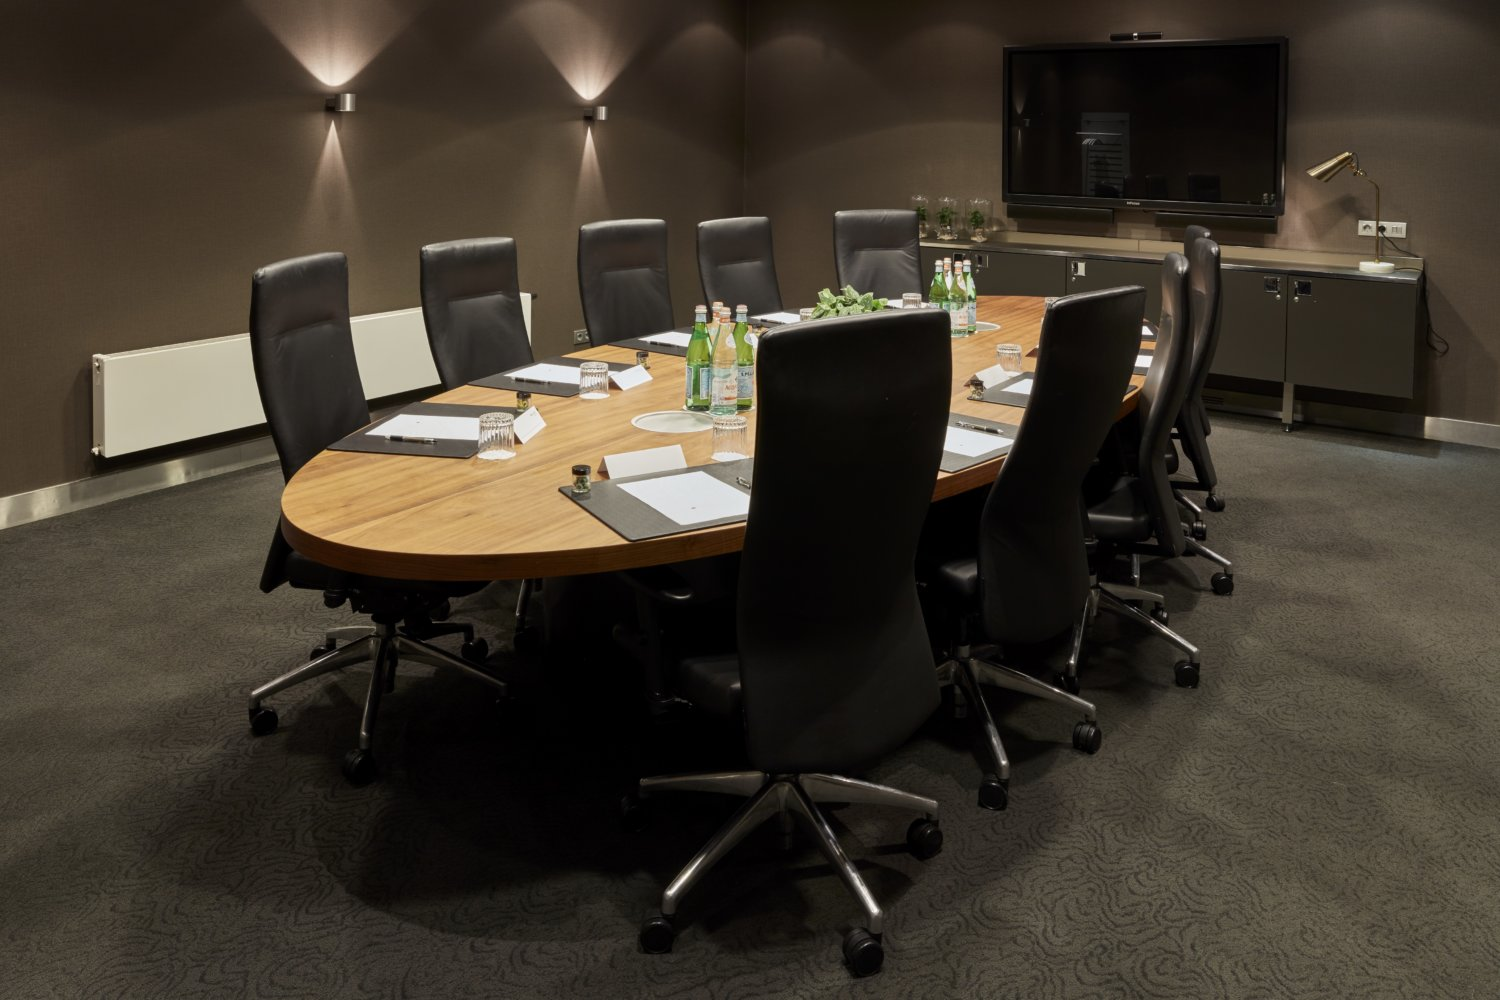 Park Hotel Amsterdam meeting room meetings and events Rome